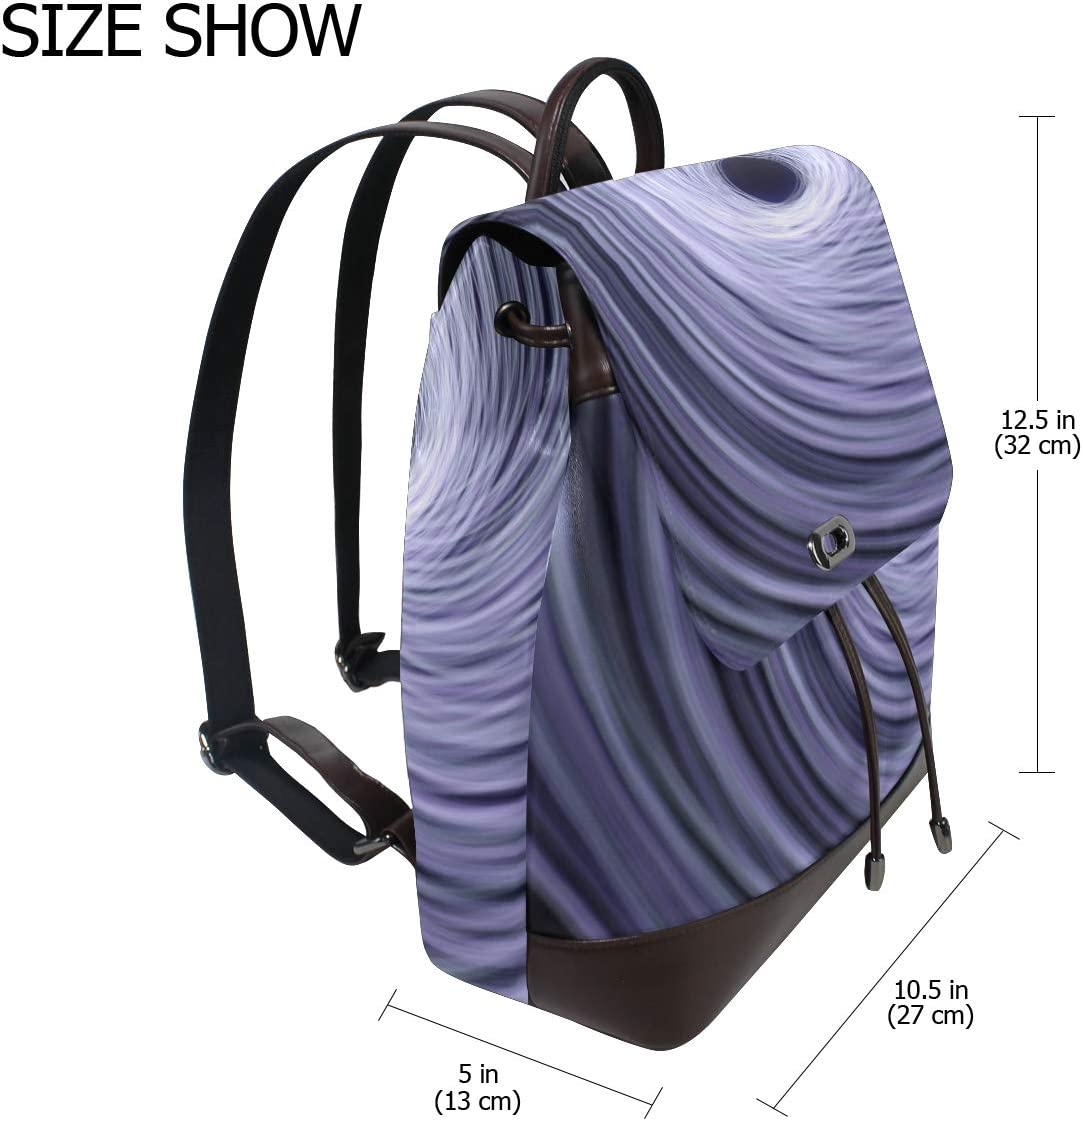 Storage Bag For Men Women Girls Boys Personalized Pattern Light Painting Backpack School Bag Travel Bag Shopping Bag